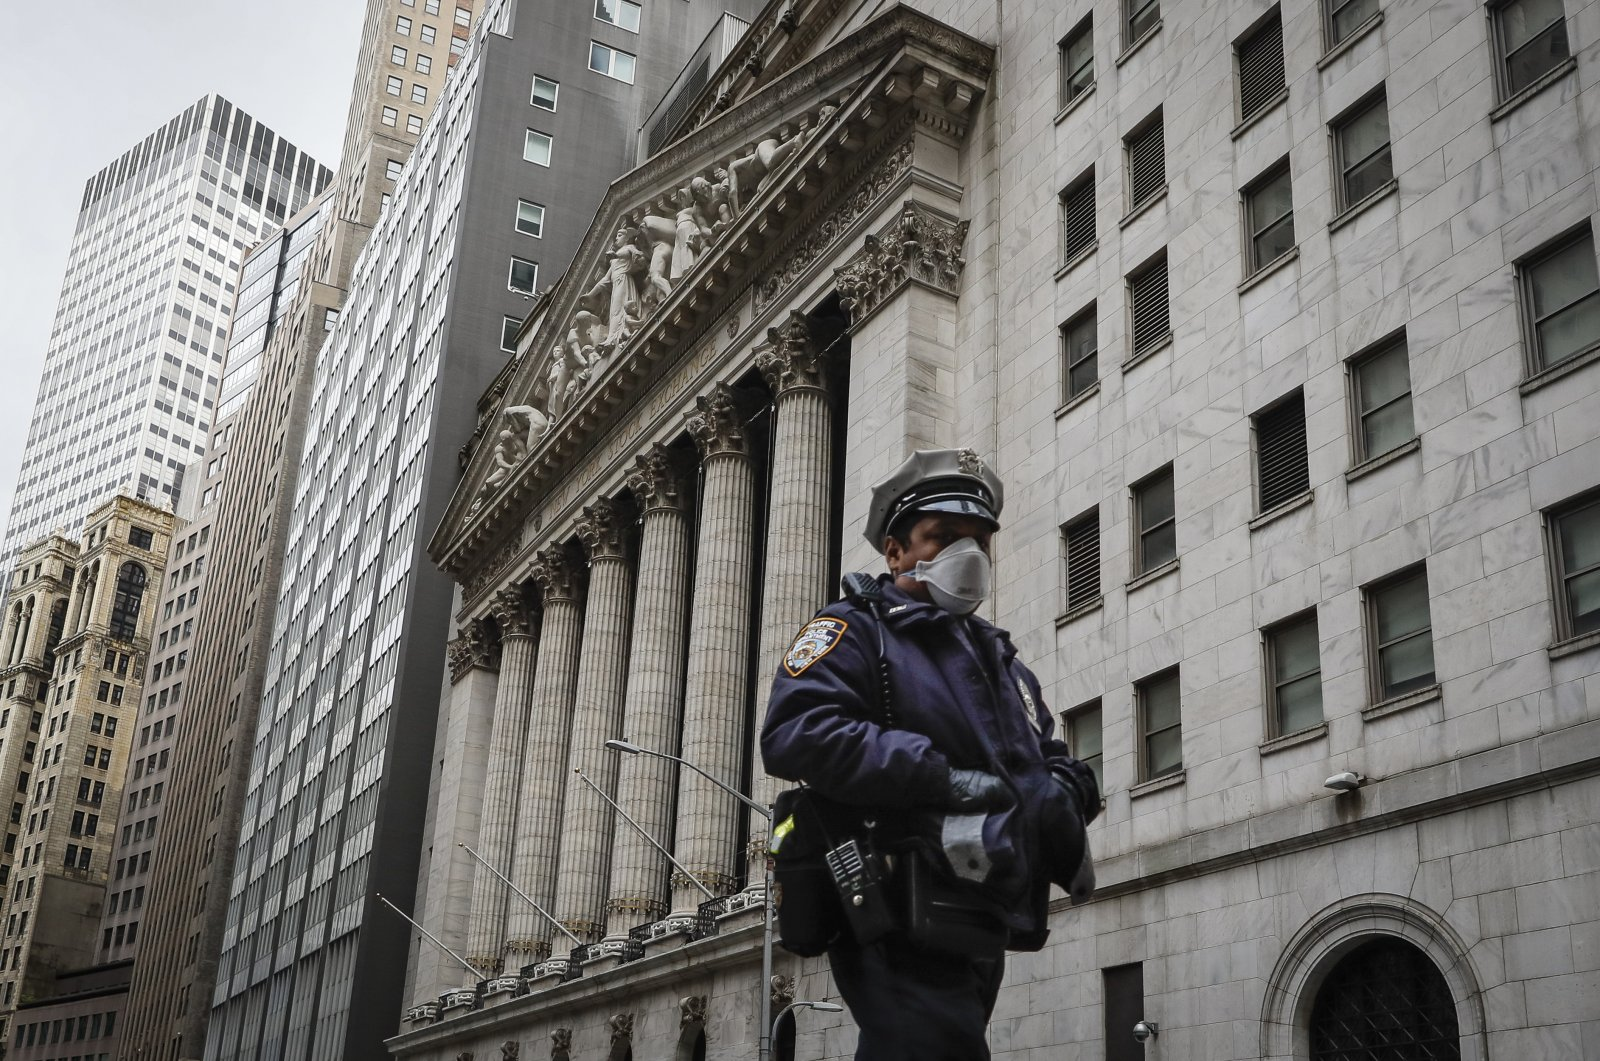 An NYPD officer walks along a sparsely populated Wall Street, Friday, May 1, 2020, in the Manhattan borough of New York. (AP Photo)